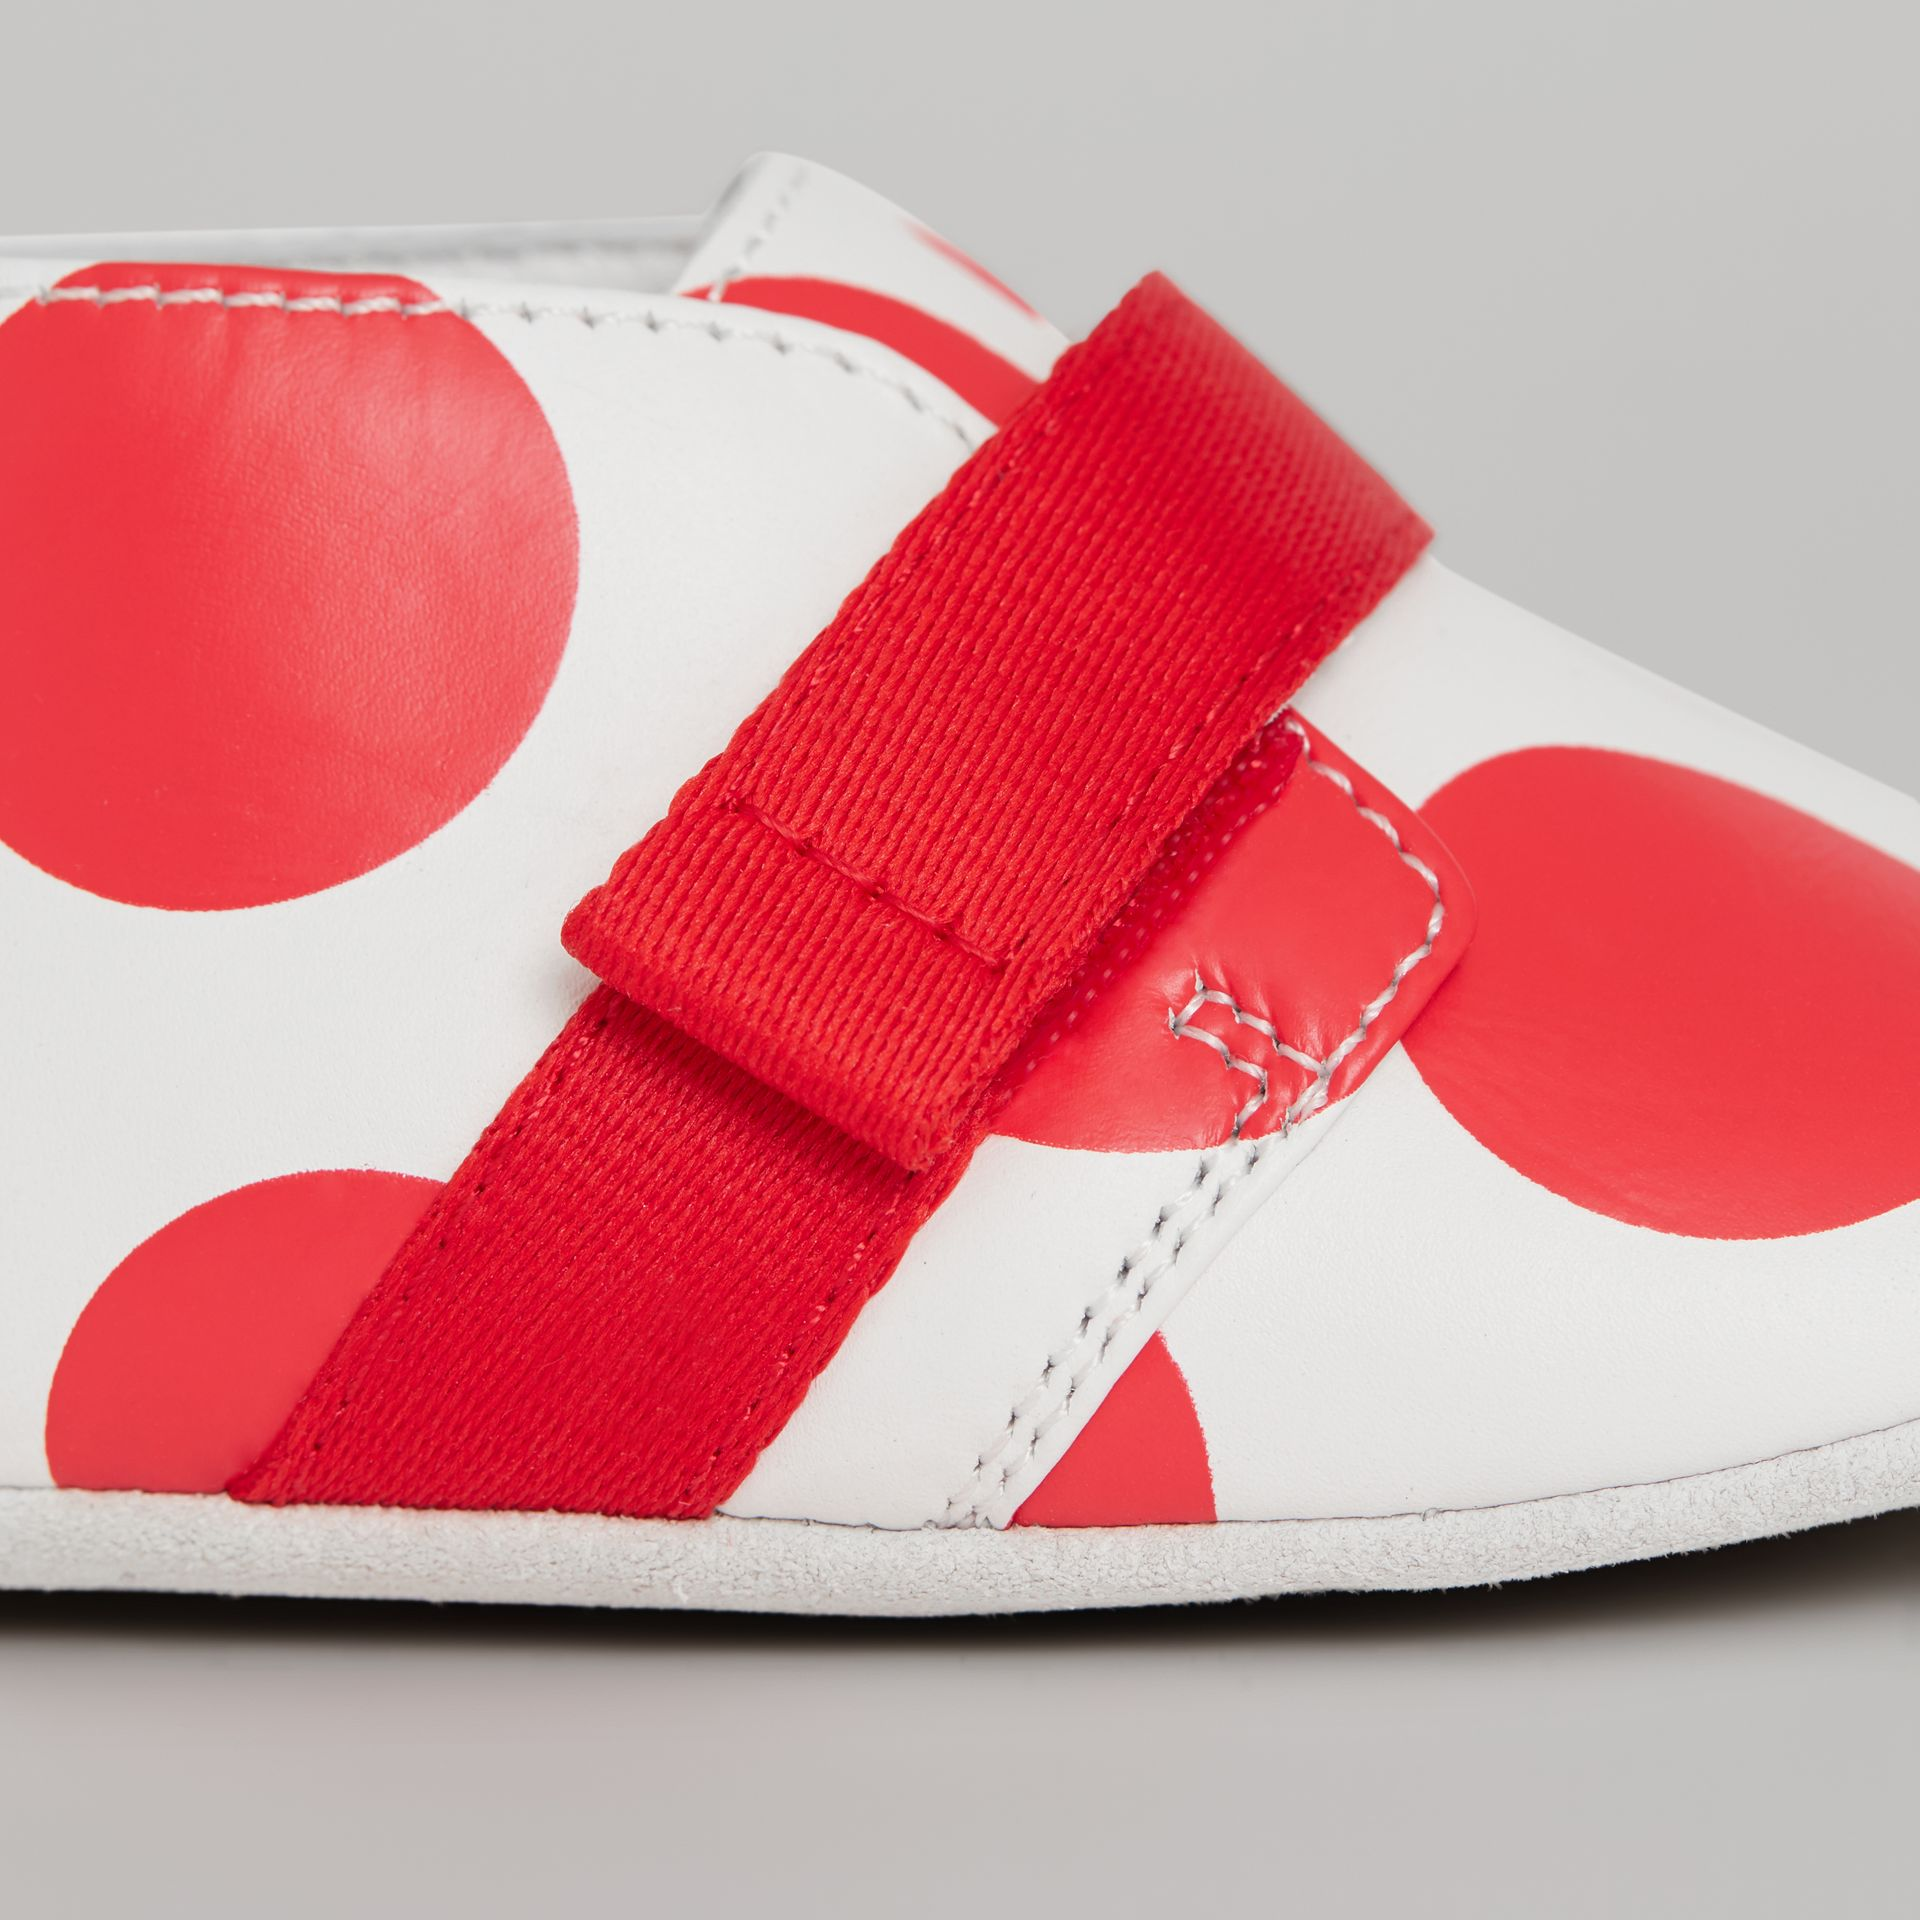 Chaussures en cuir à pois (Rouge Vif) - Enfant | Burberry - photo de la galerie 1